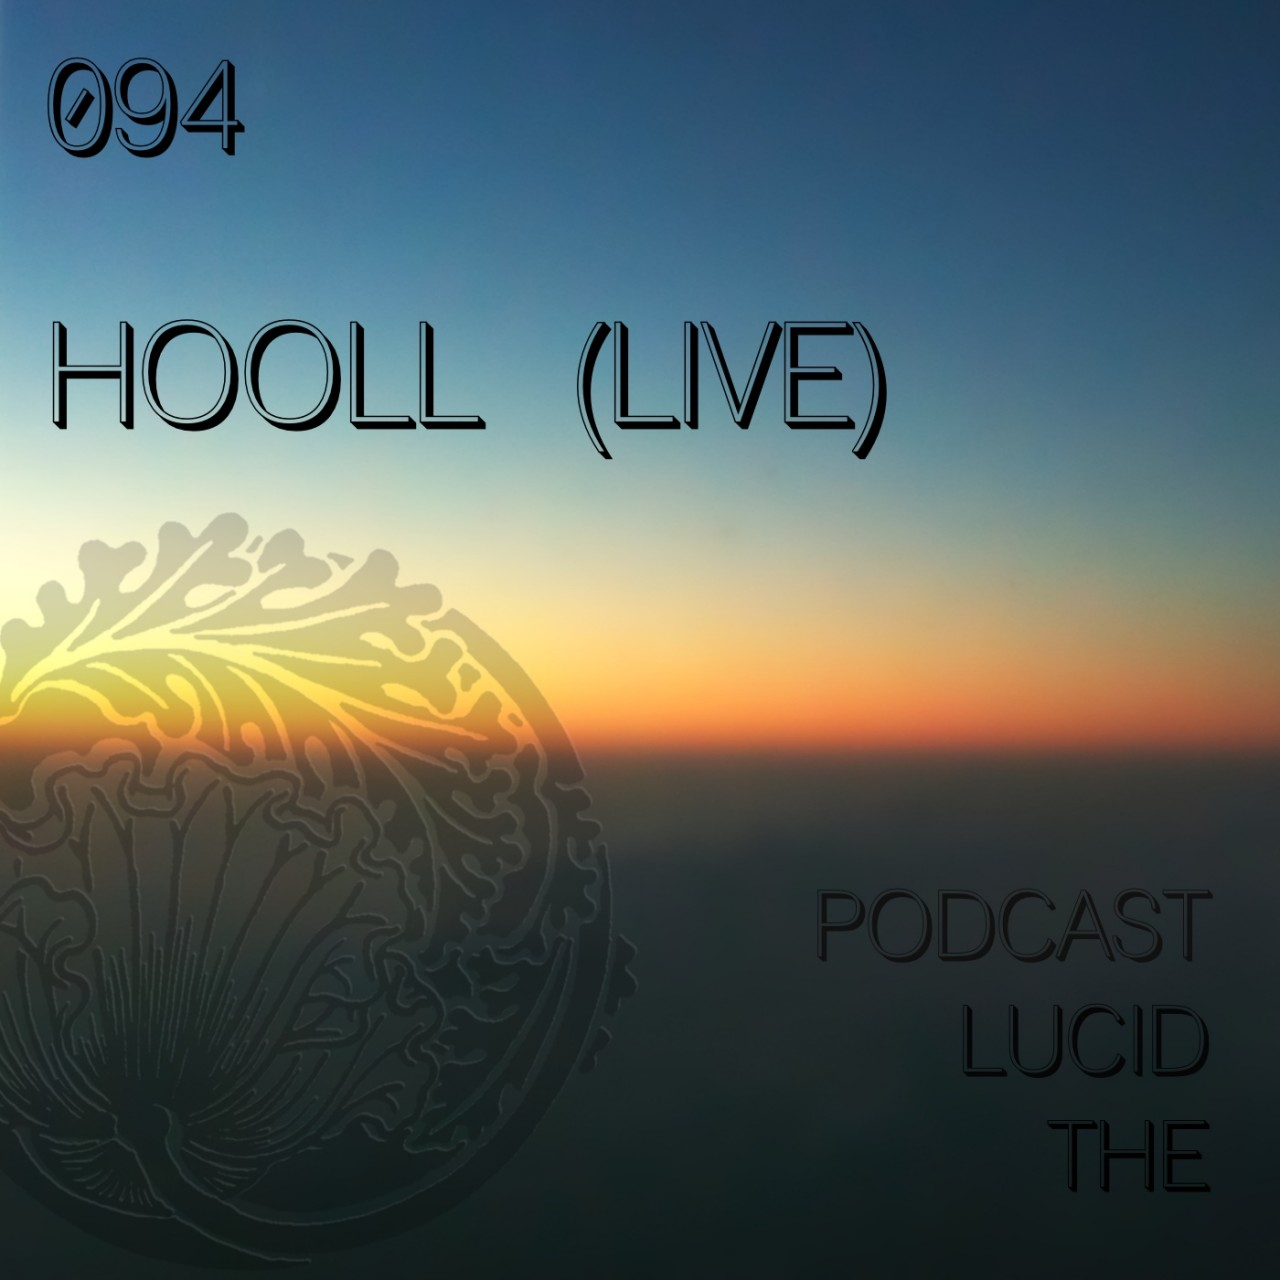 The Lucid Podcast 094 Hooll (live)